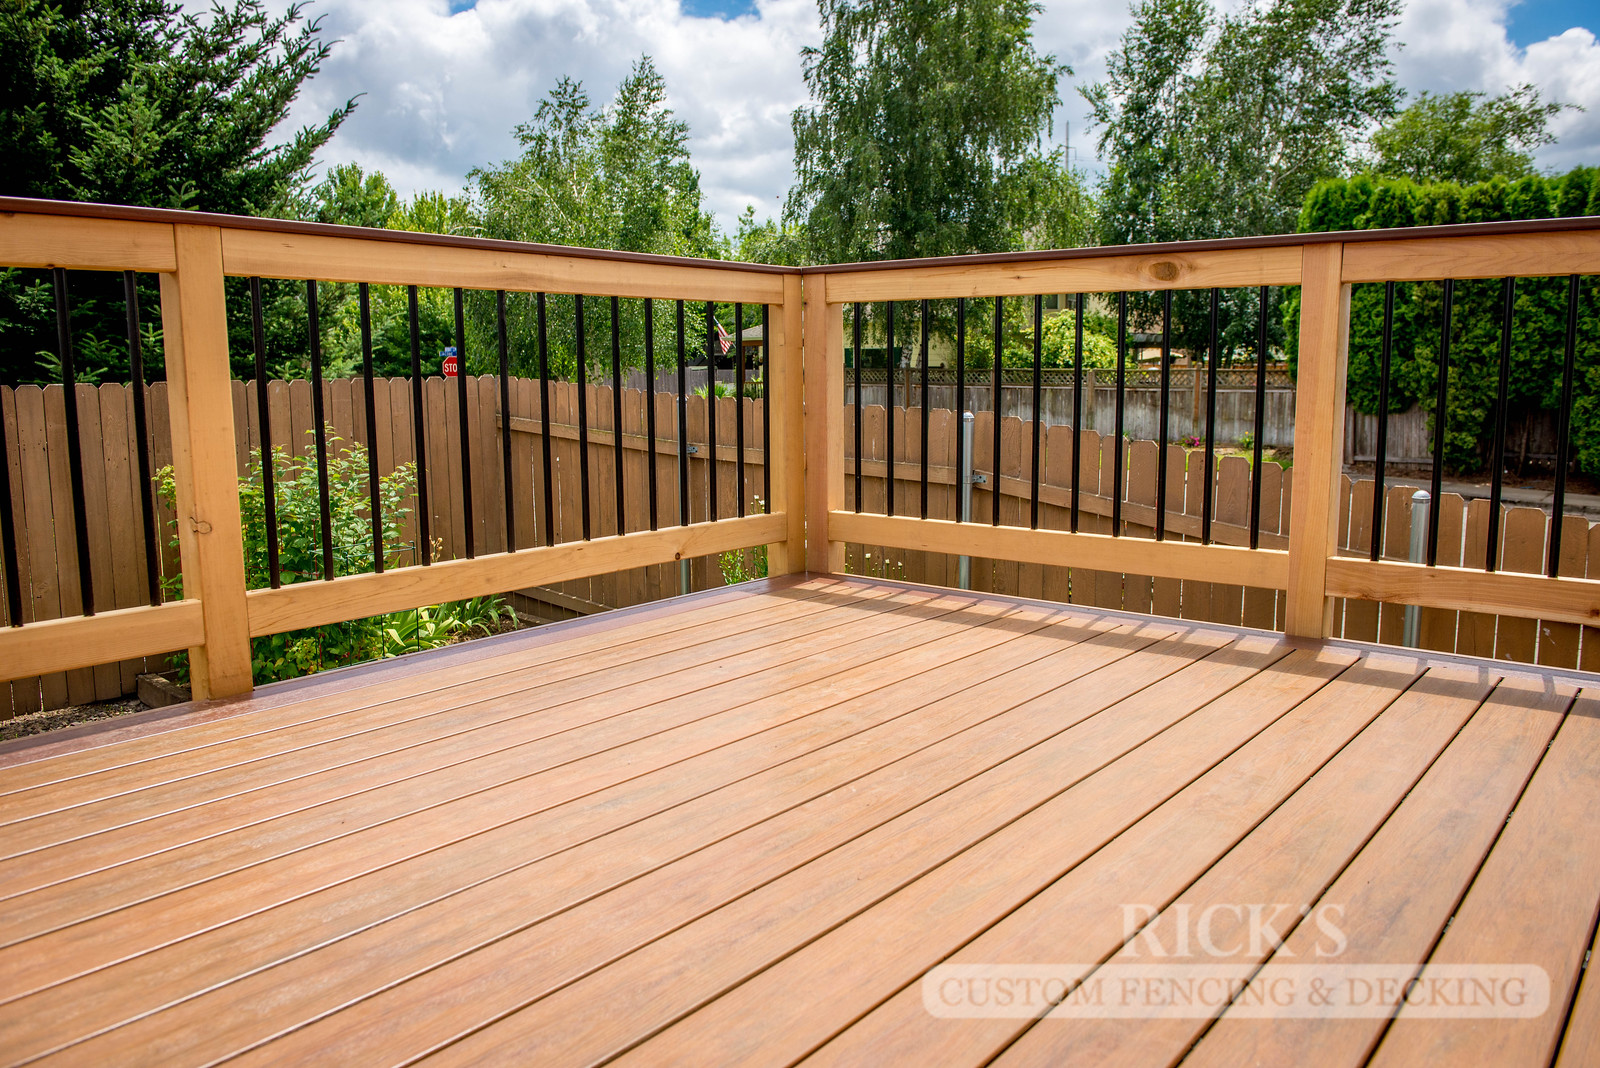 1546 - Cedar Handrail with Aluminum Balusters